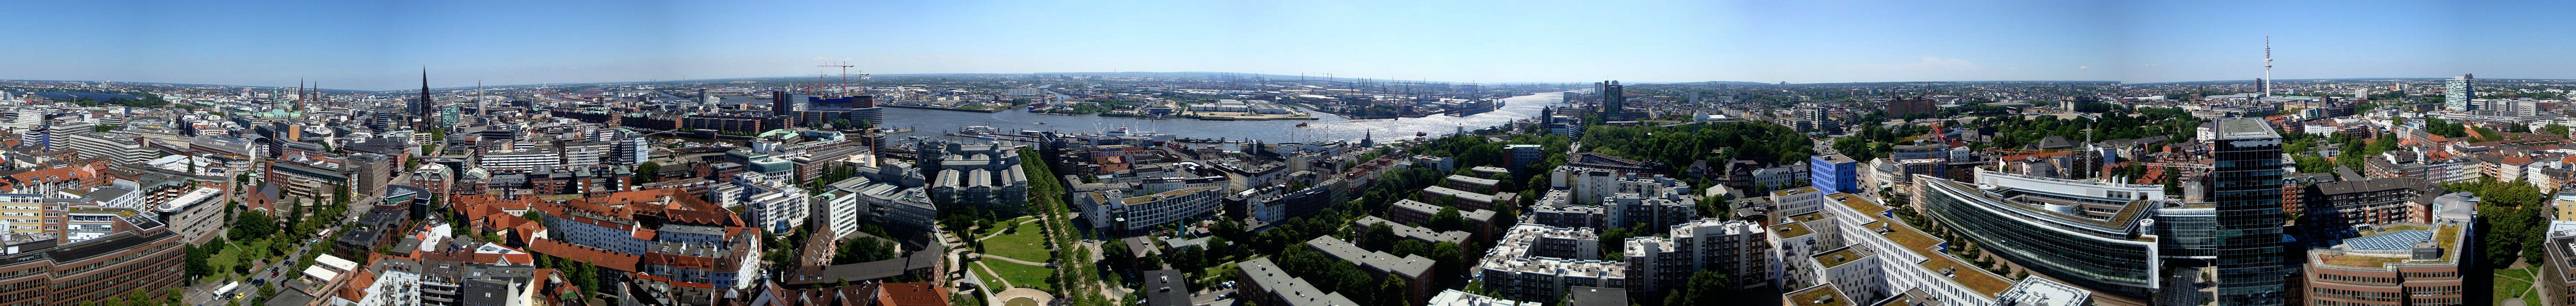 Michelsturm Hamburg